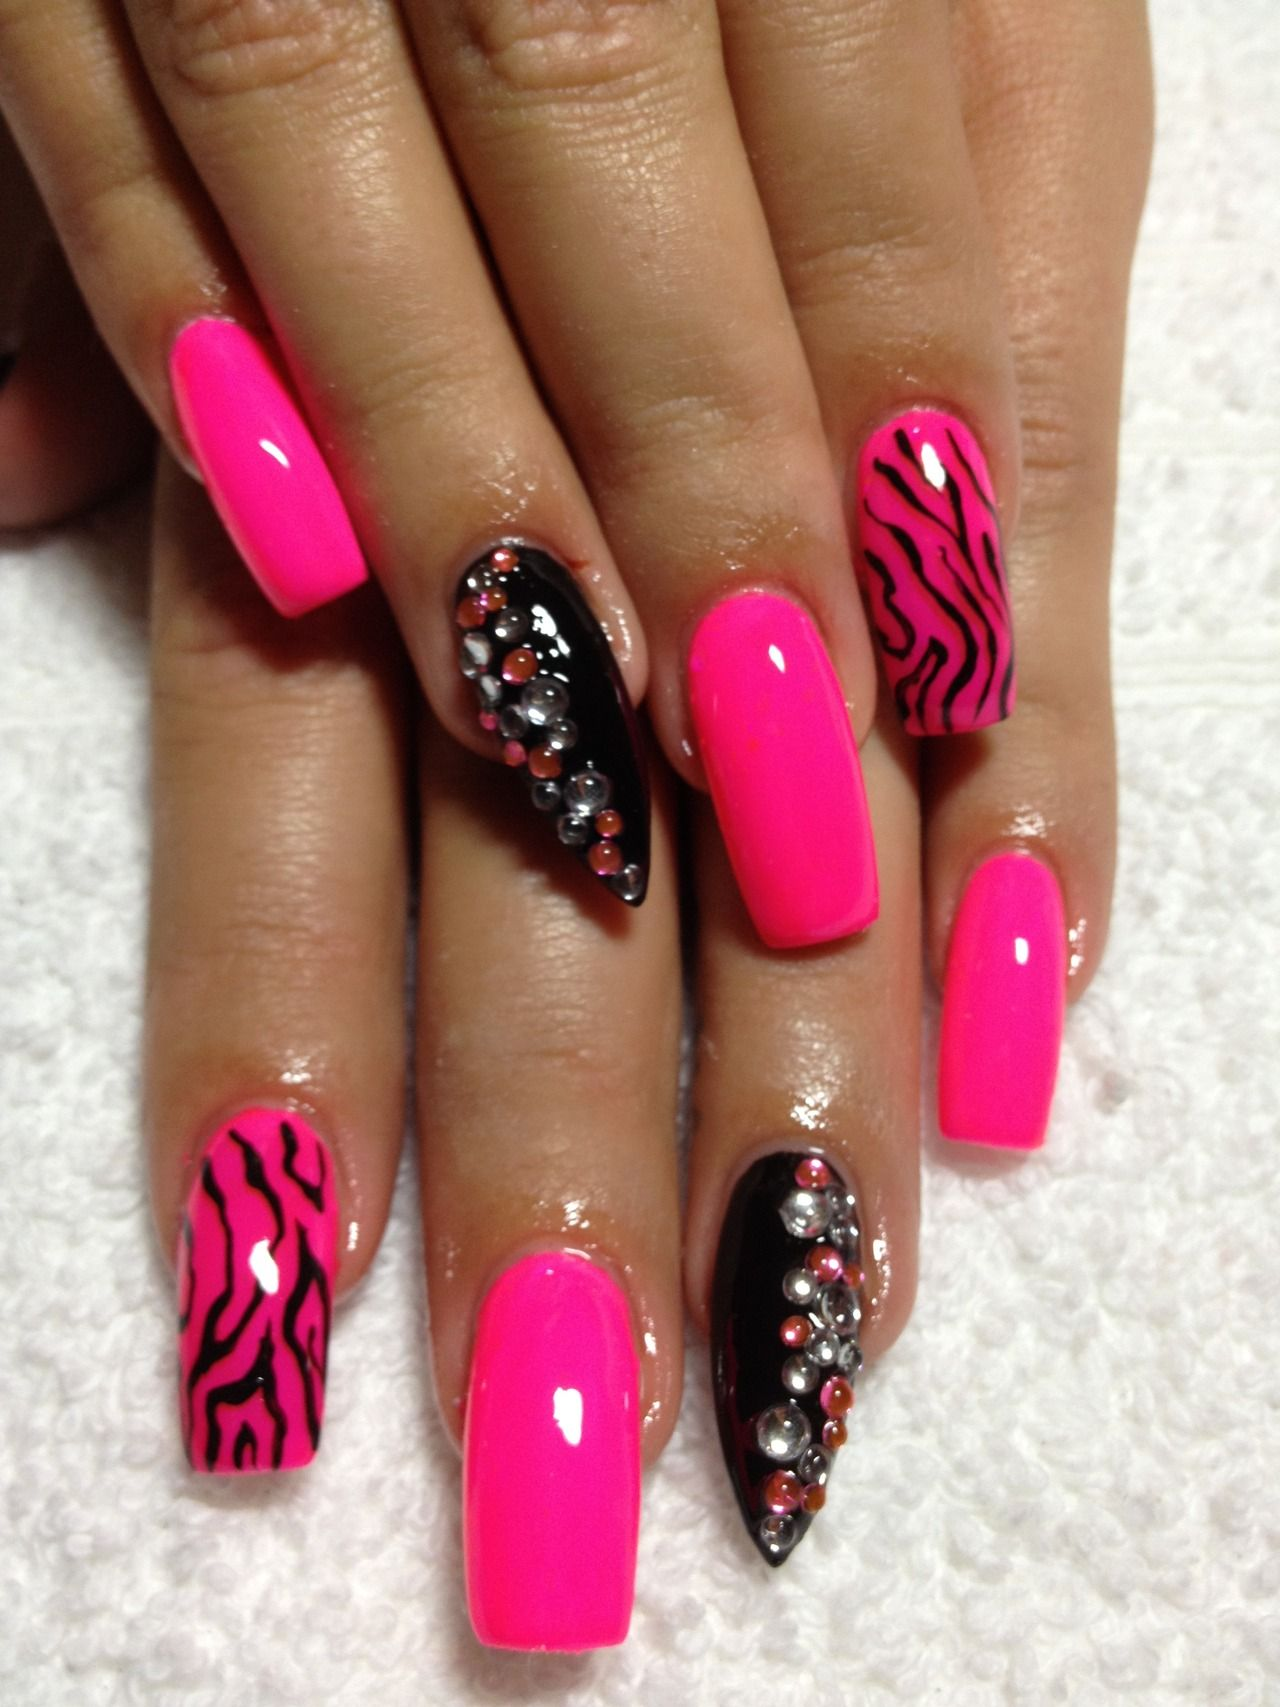 Pink zebra nails nails pinterest - Find This Pin And More On Nails By Shannonstewart5 Pink Zebra